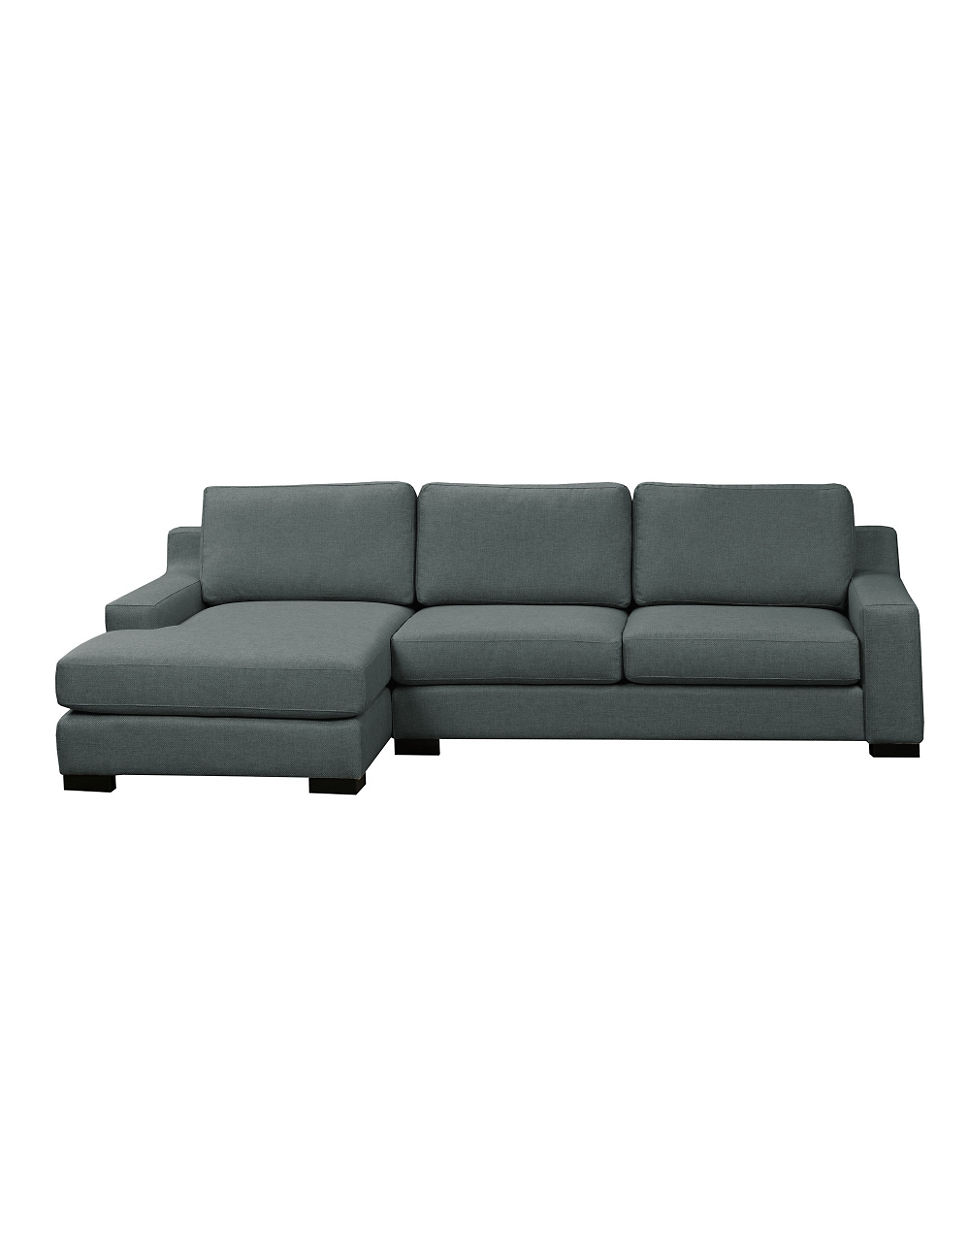 Baby cribs kijiji calgary - Brussels Sofa With Chaise